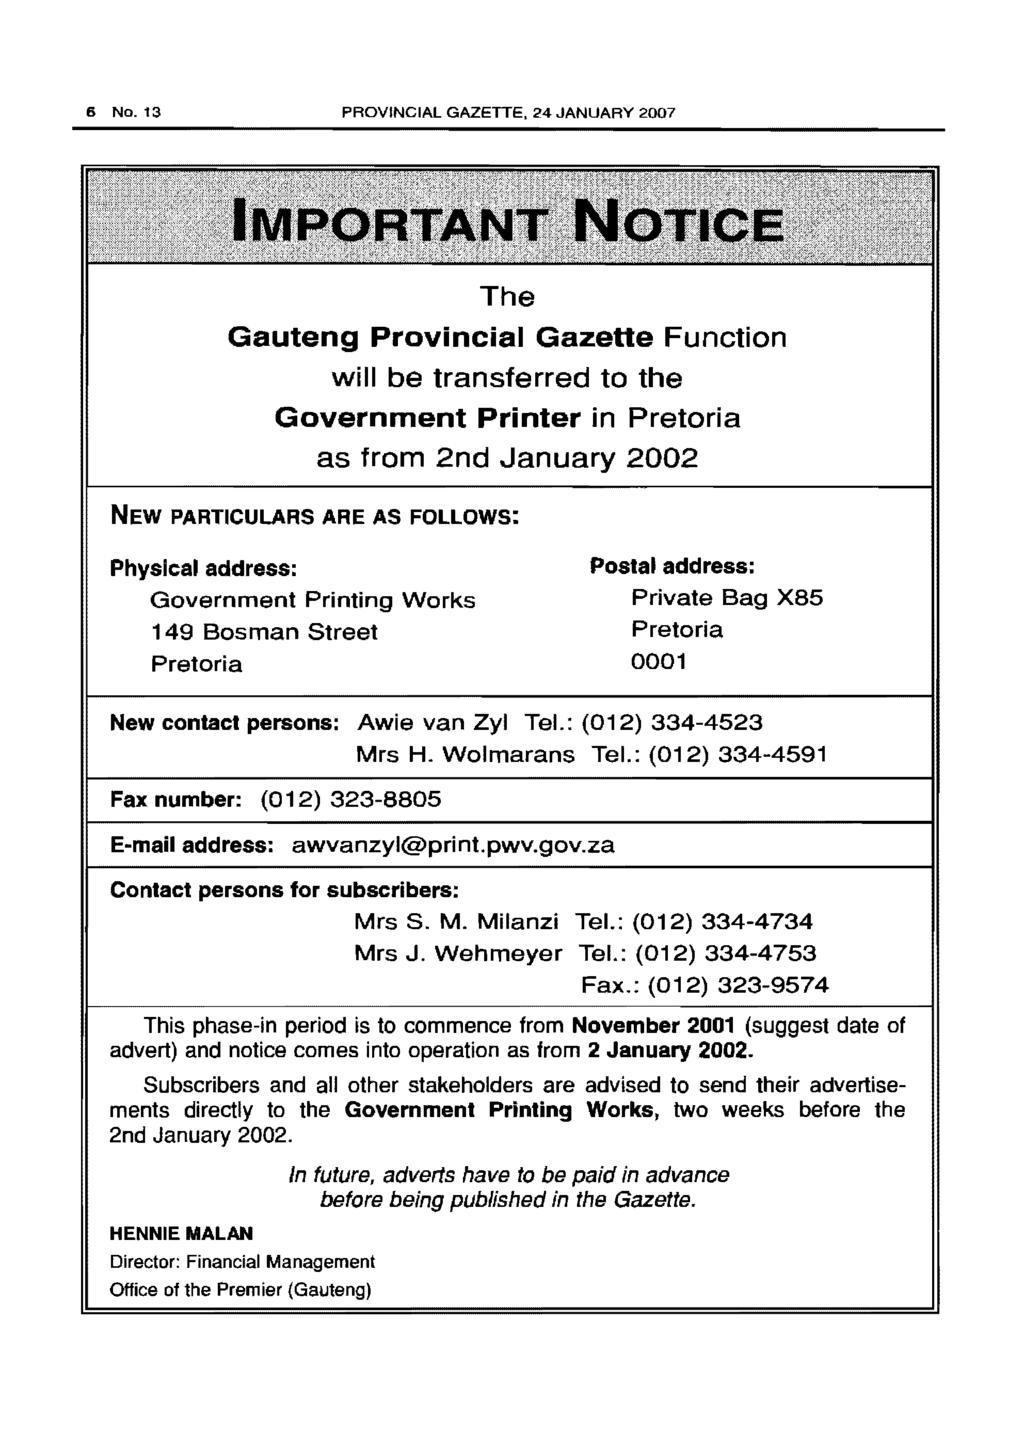 6 No. 13 PROVINCIAL GAZETTE, 24 JANUARY 2007 The Gauteng Provincial Gazette Function will be transferred to the Government Printer in Pretoria as from 2nd January 2002 NEW PARTICULARS ARE AS FOllOWS: